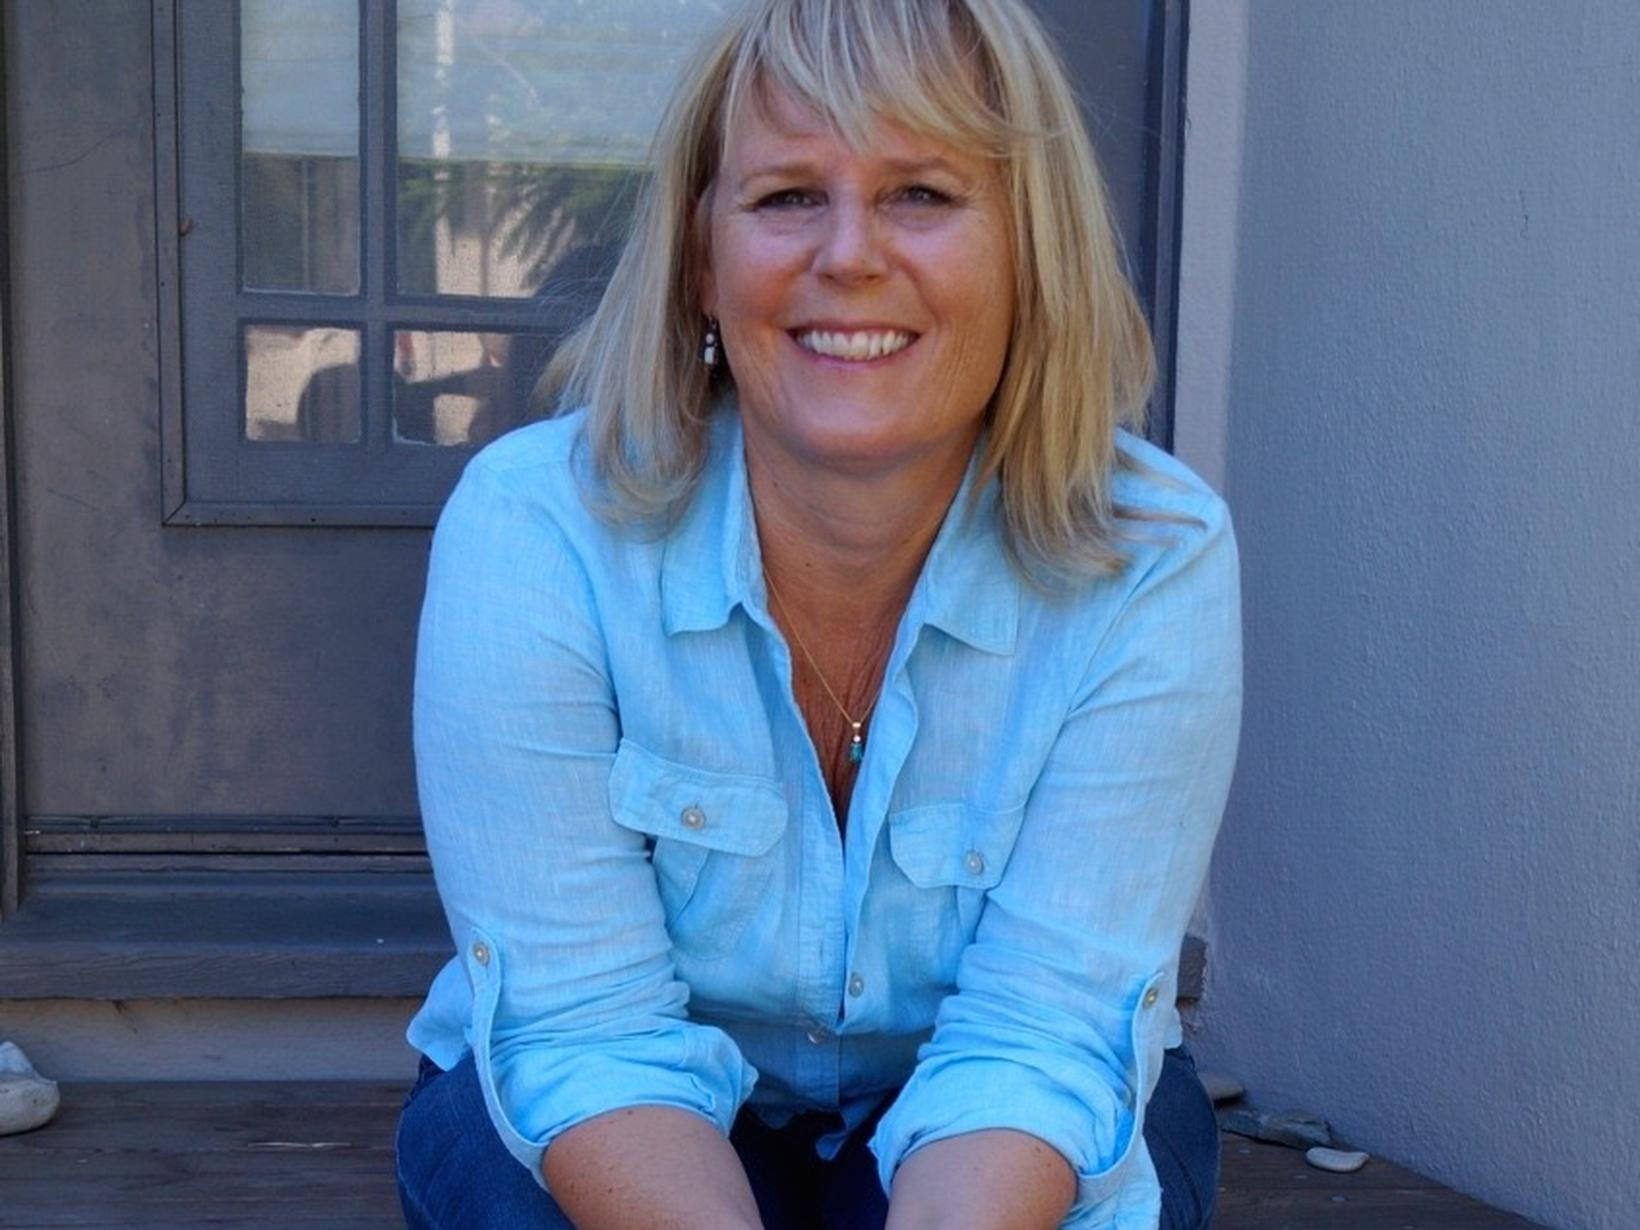 Nancy from Santa Barbara, California, United States